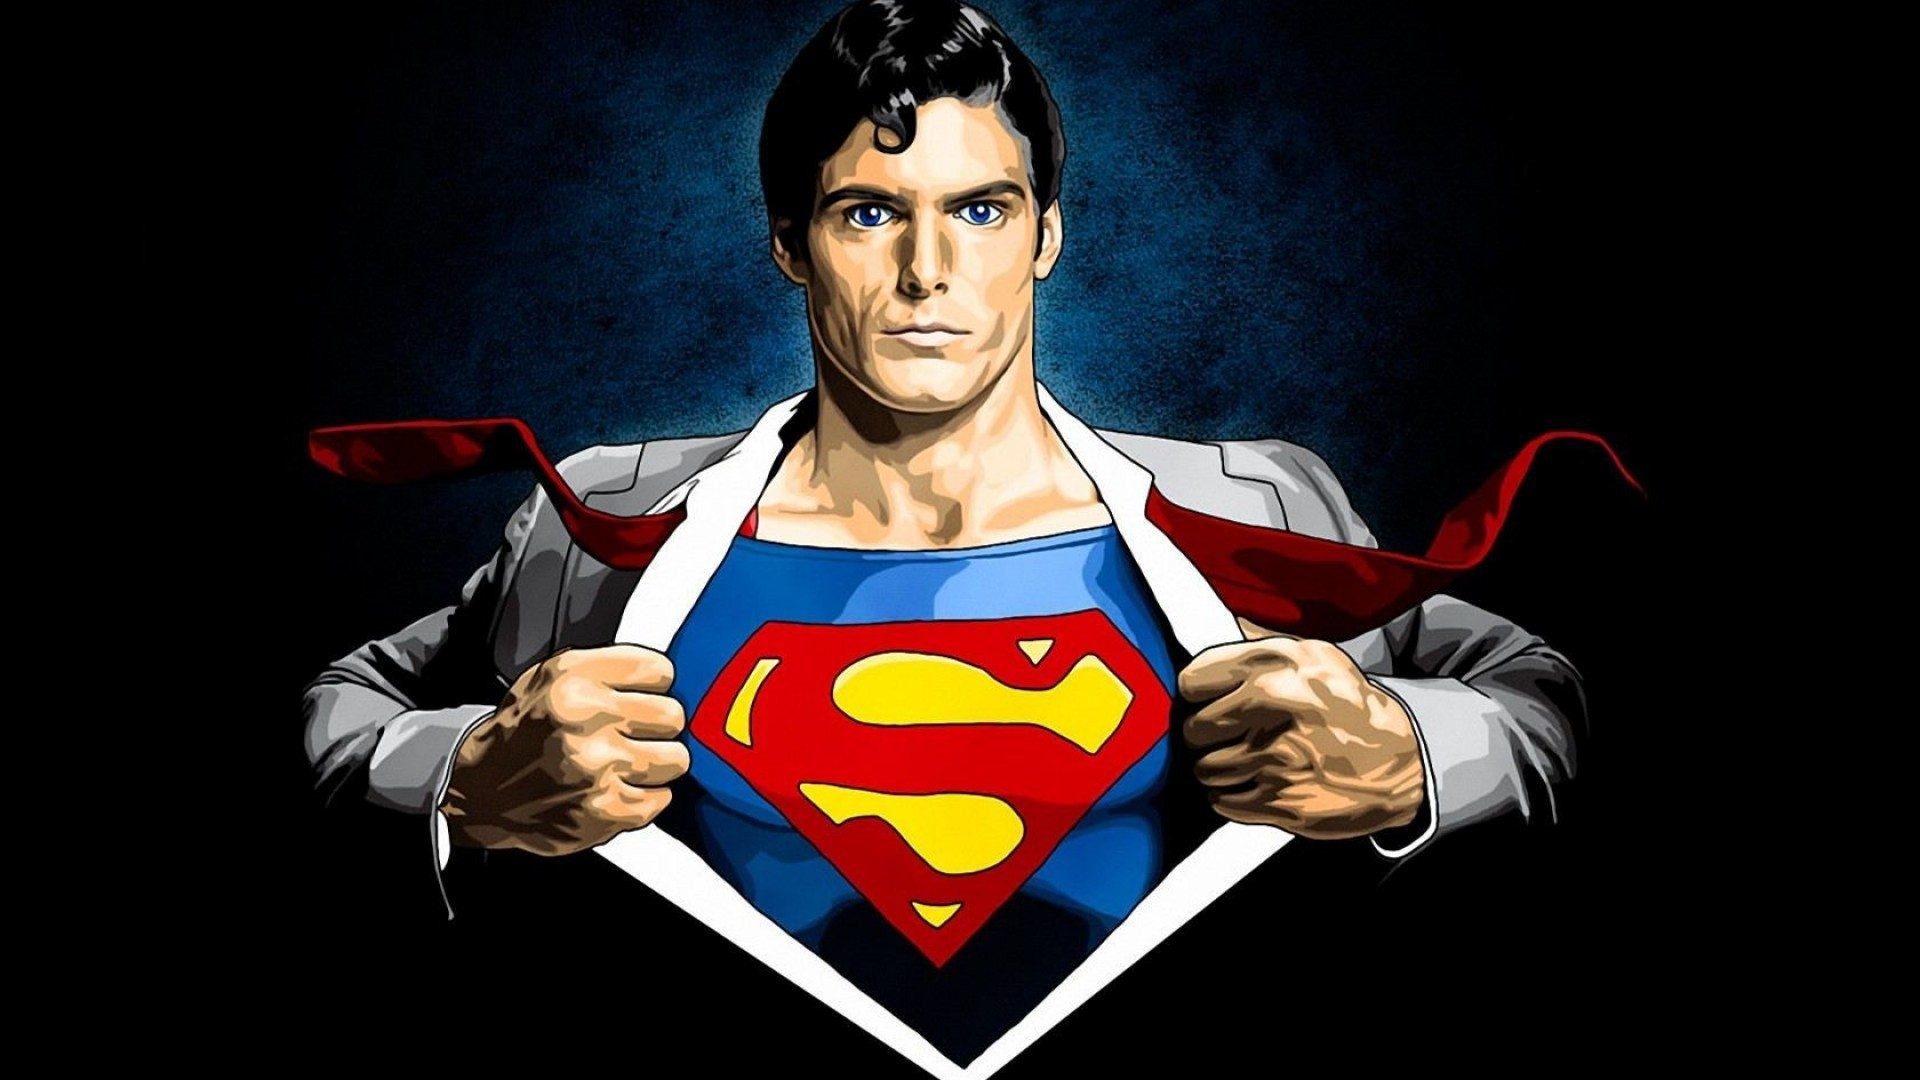 superman wallpaper, superman hd wallpaper